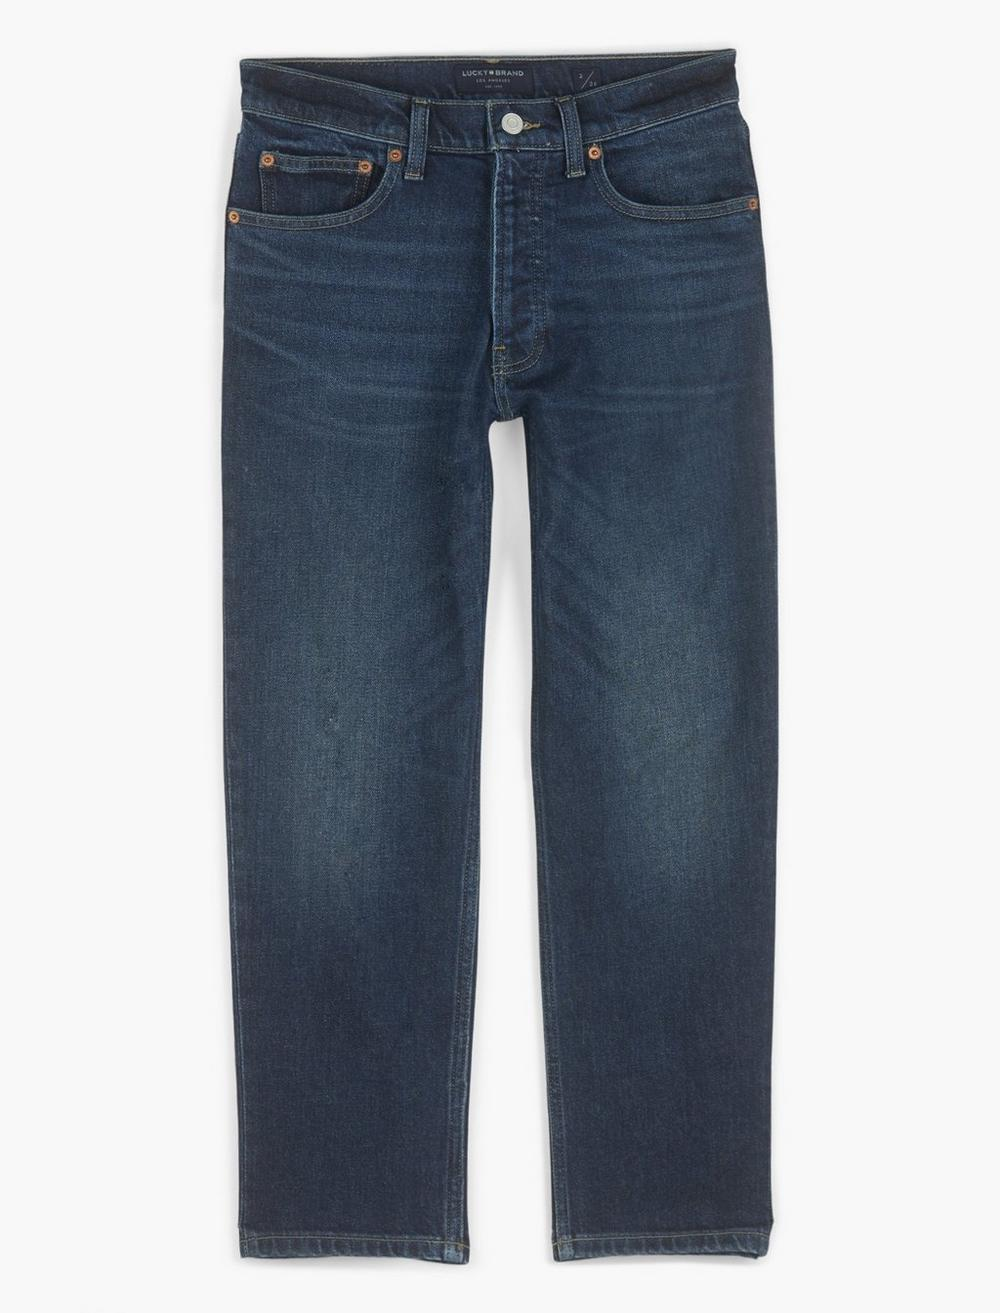 RELAXED TAPER JEAN, image 1